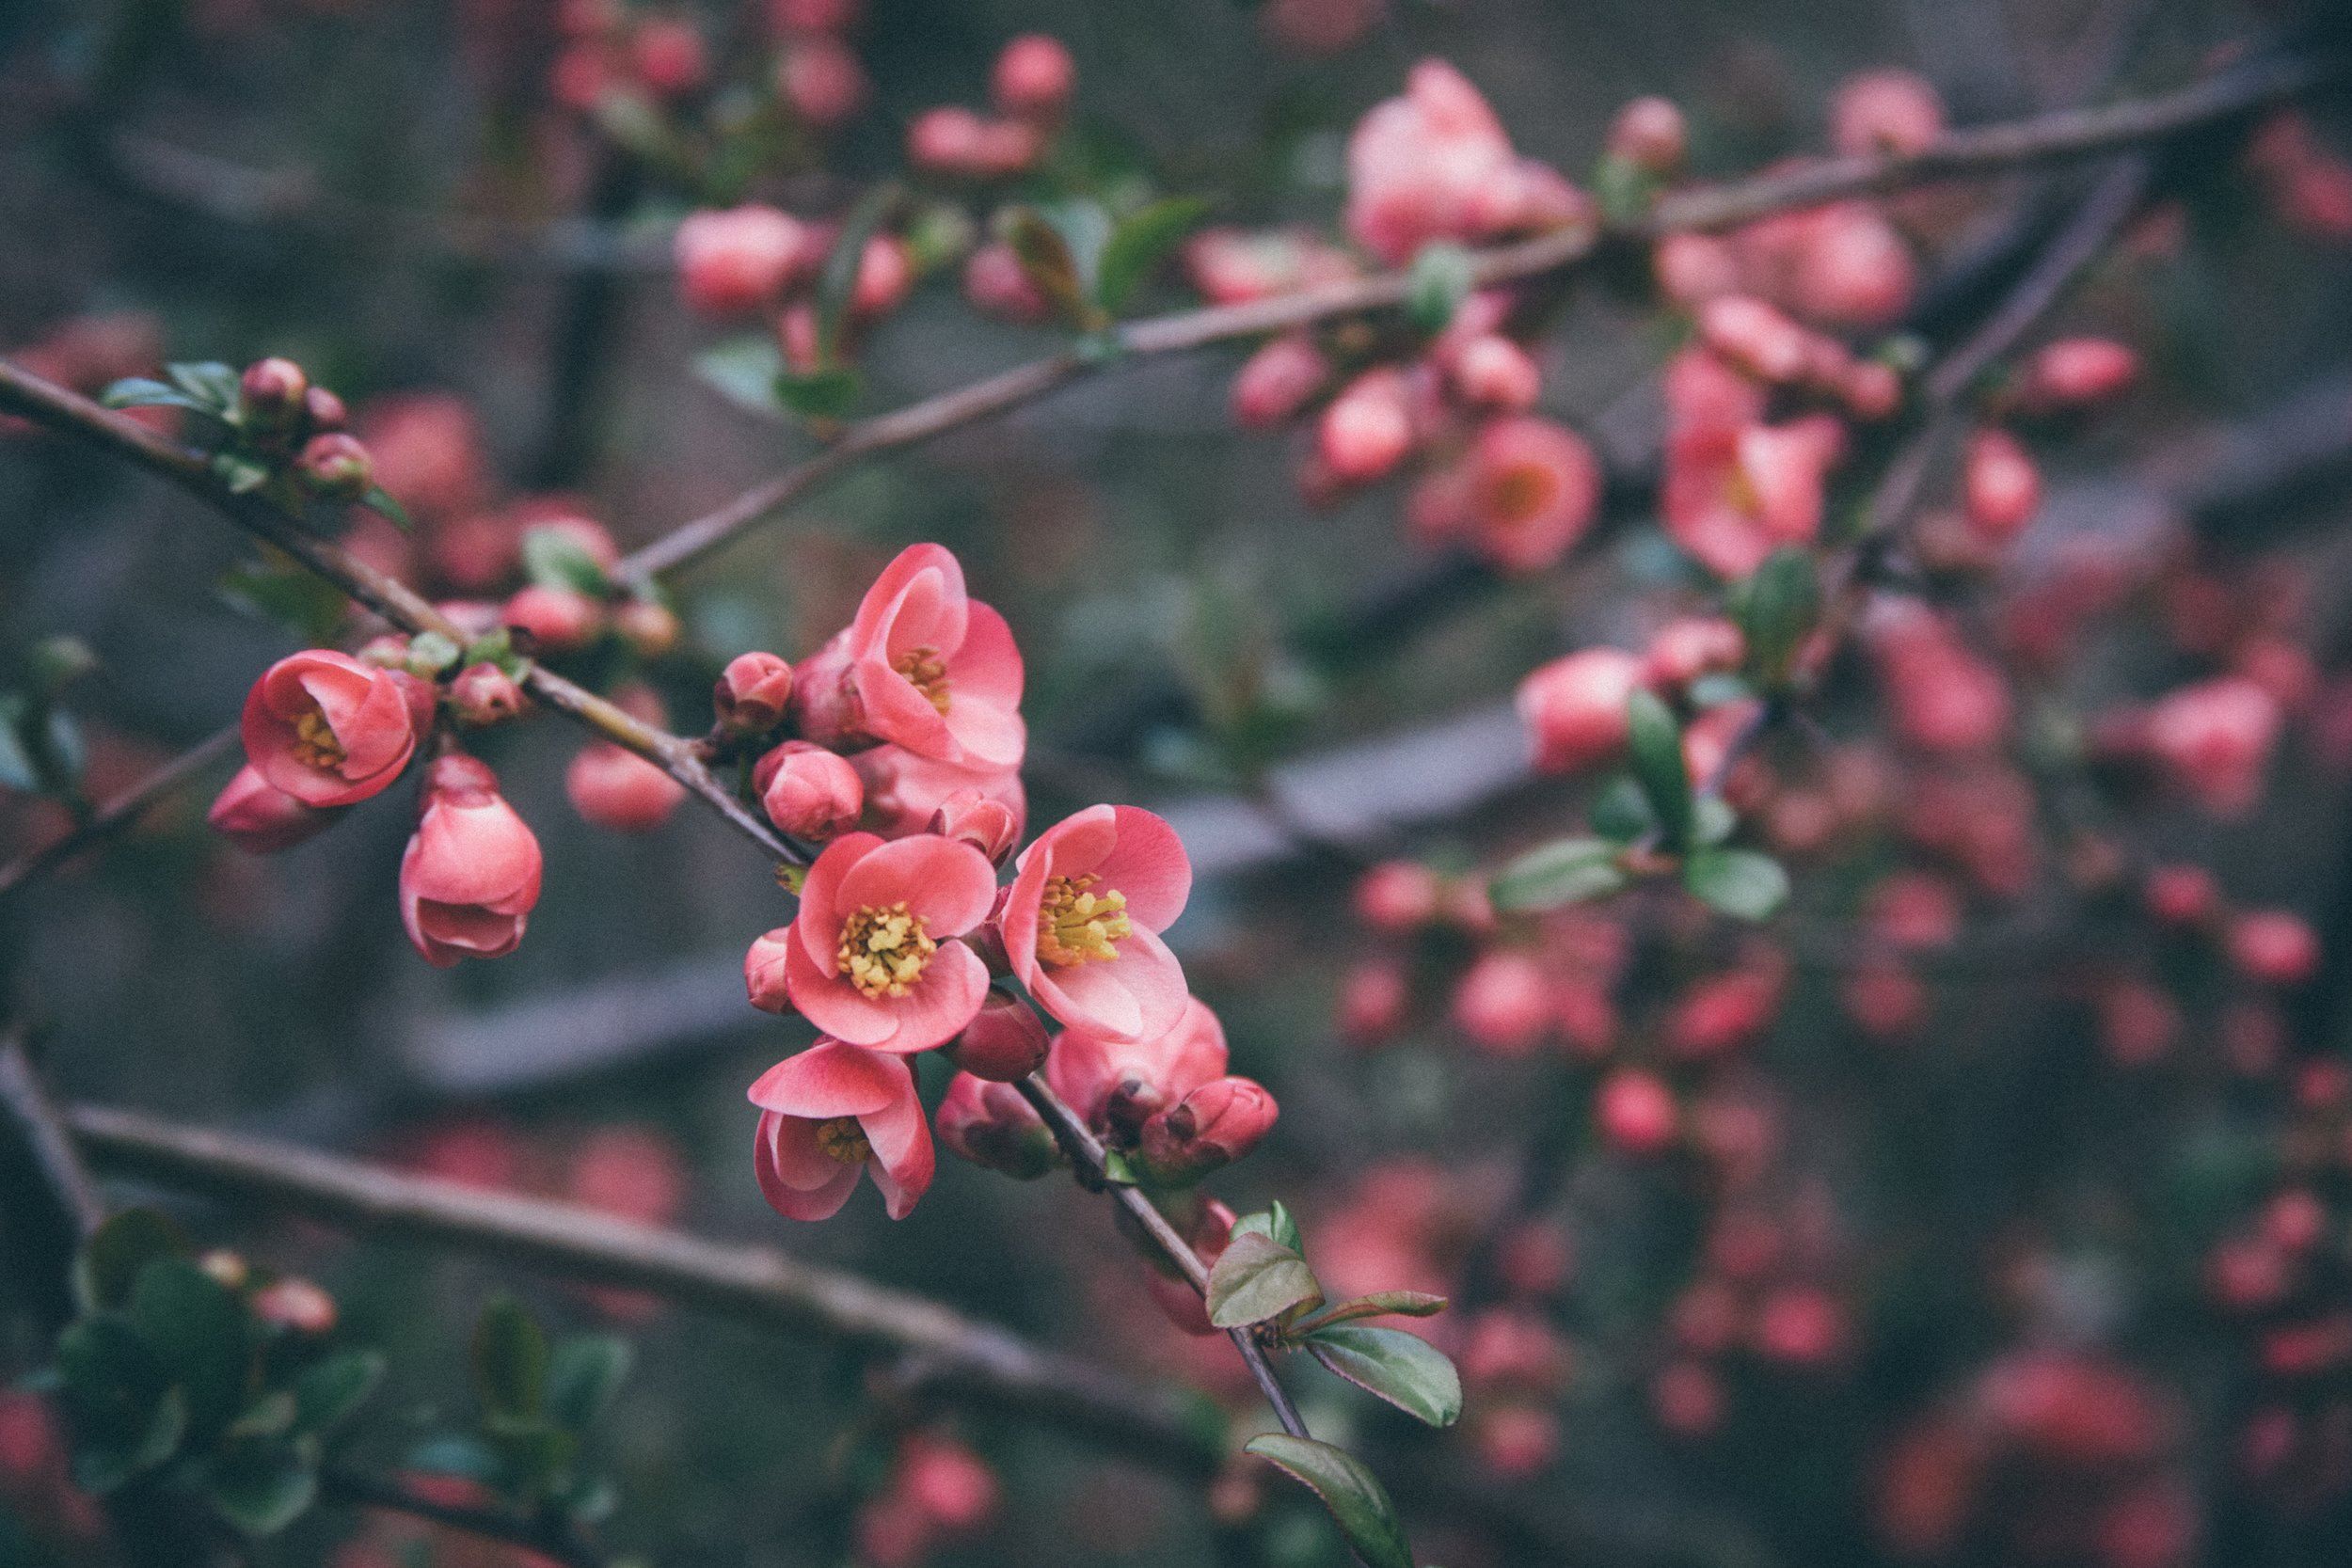 Dearest Readers, - It's a pleasure to welcome you to Balance Garden. Today is our launch day and it feels exciting to be out in the world at last, especially at this time of new beginnings and the promise of Spring just around the corner.